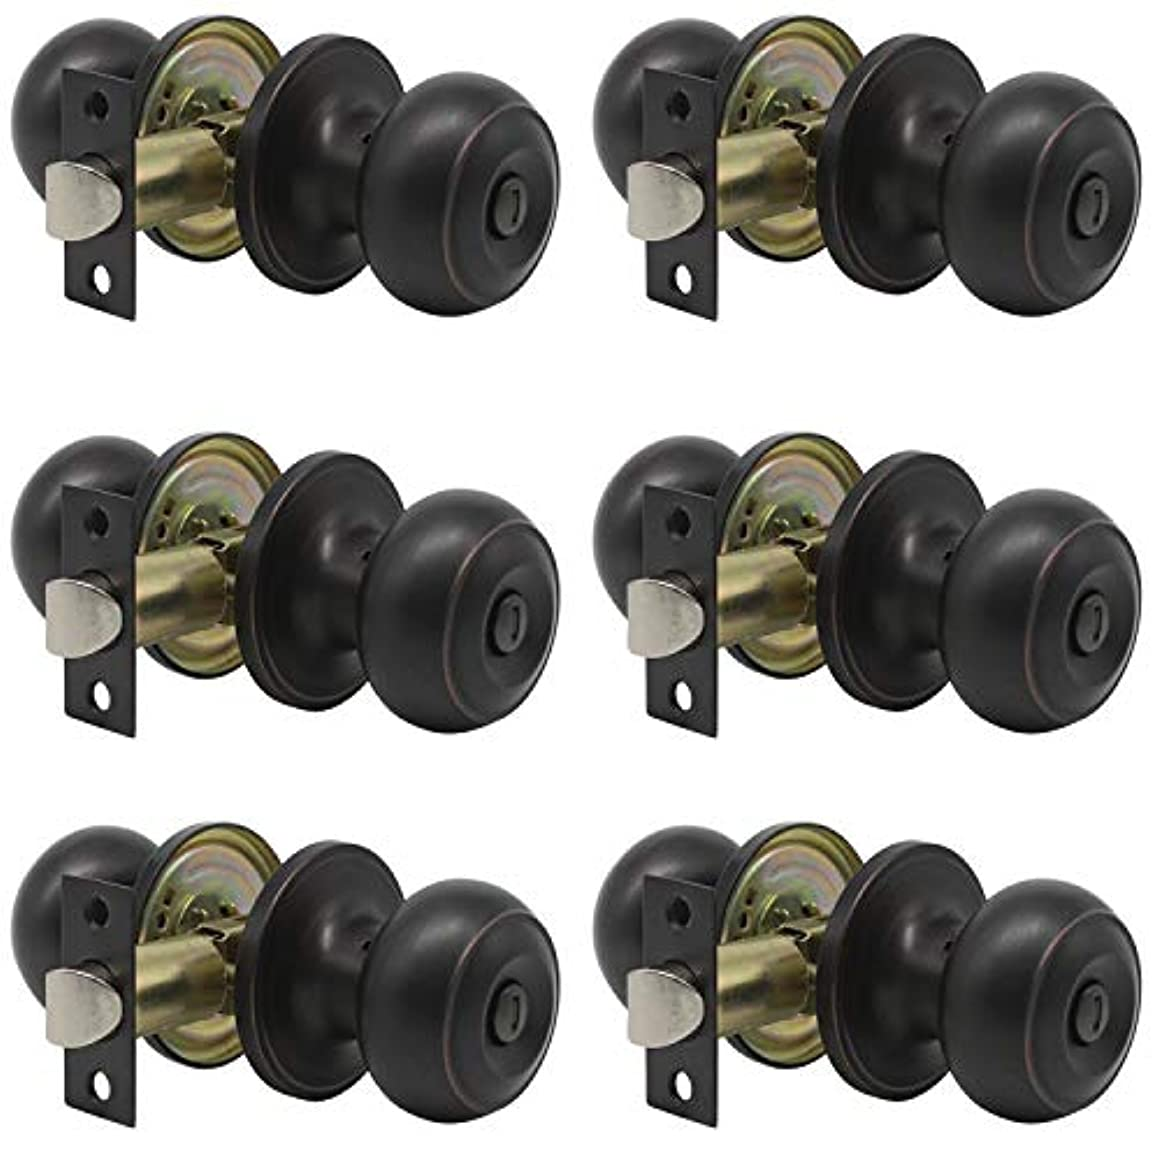 Probrico Privacy Door Knob Handles Bed and Bath Keyless Leversets Oil Rubbed Bronze Lockset 6 Pack